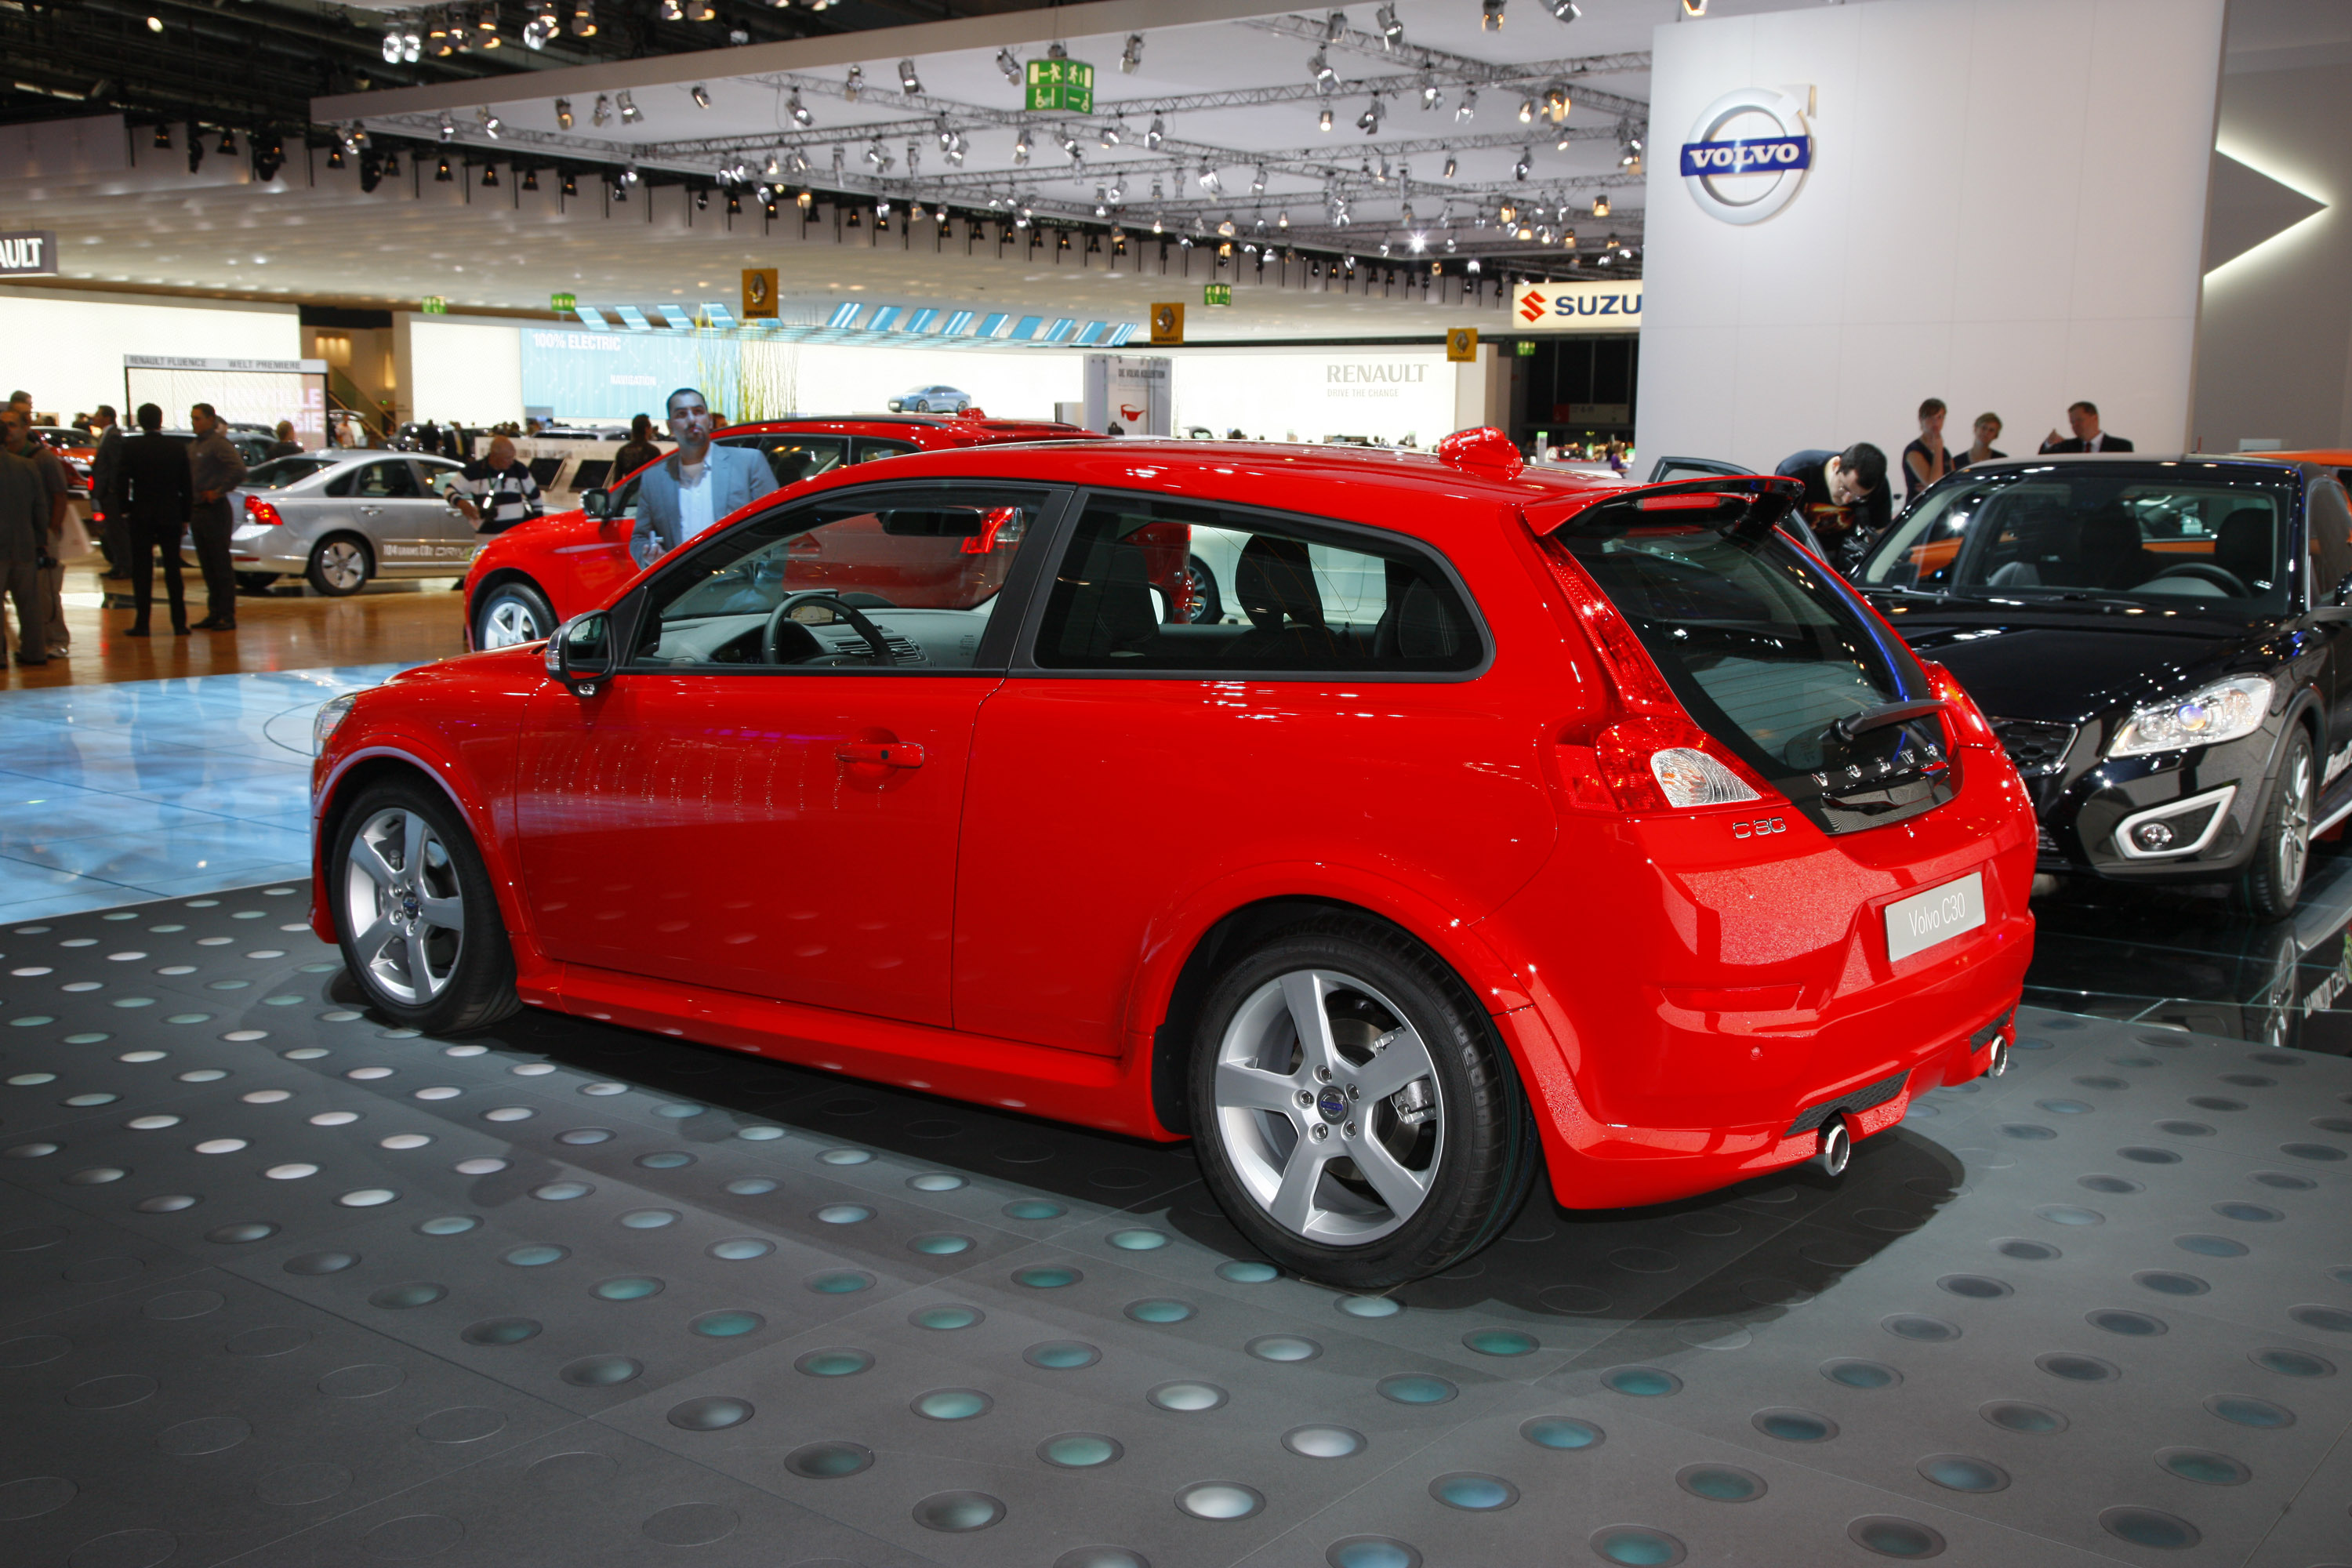 volvo-c30-r-design-2009-02 Great Description About Volvo C30 R Design with Interesting Gallery Cars Review